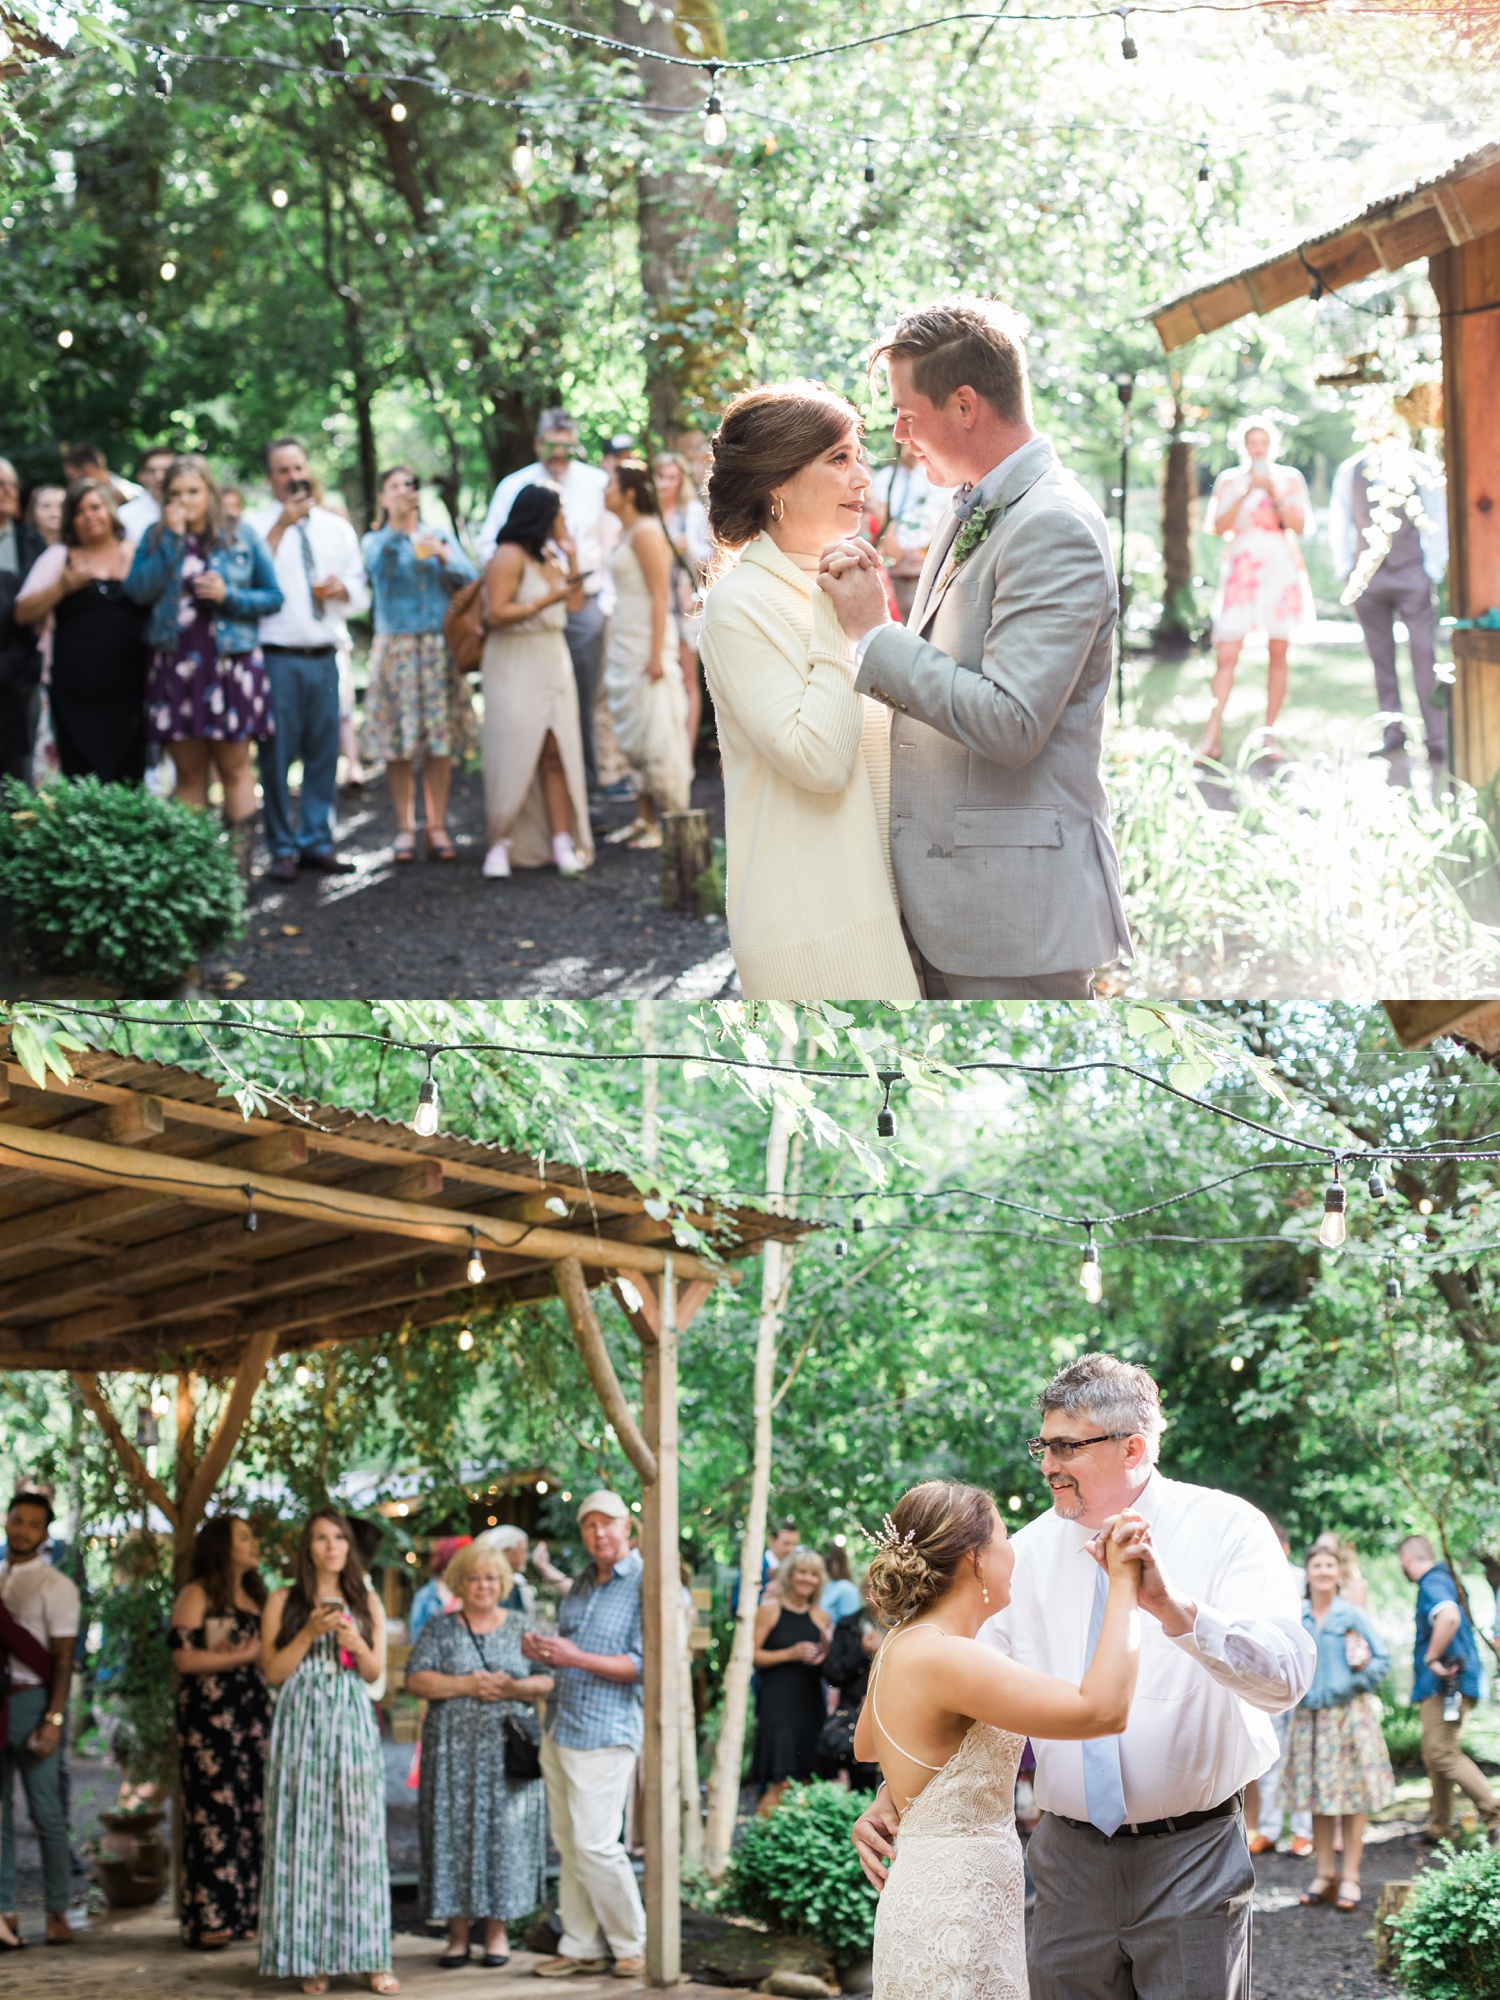 A bride and groom dancing with loved ones during their reception at a summer wedding at Maroni Meadows in Snohomish, a wedding venue near Seattle, WA. | Joanna Monger Photography | Seattle & Snohomish Photographer